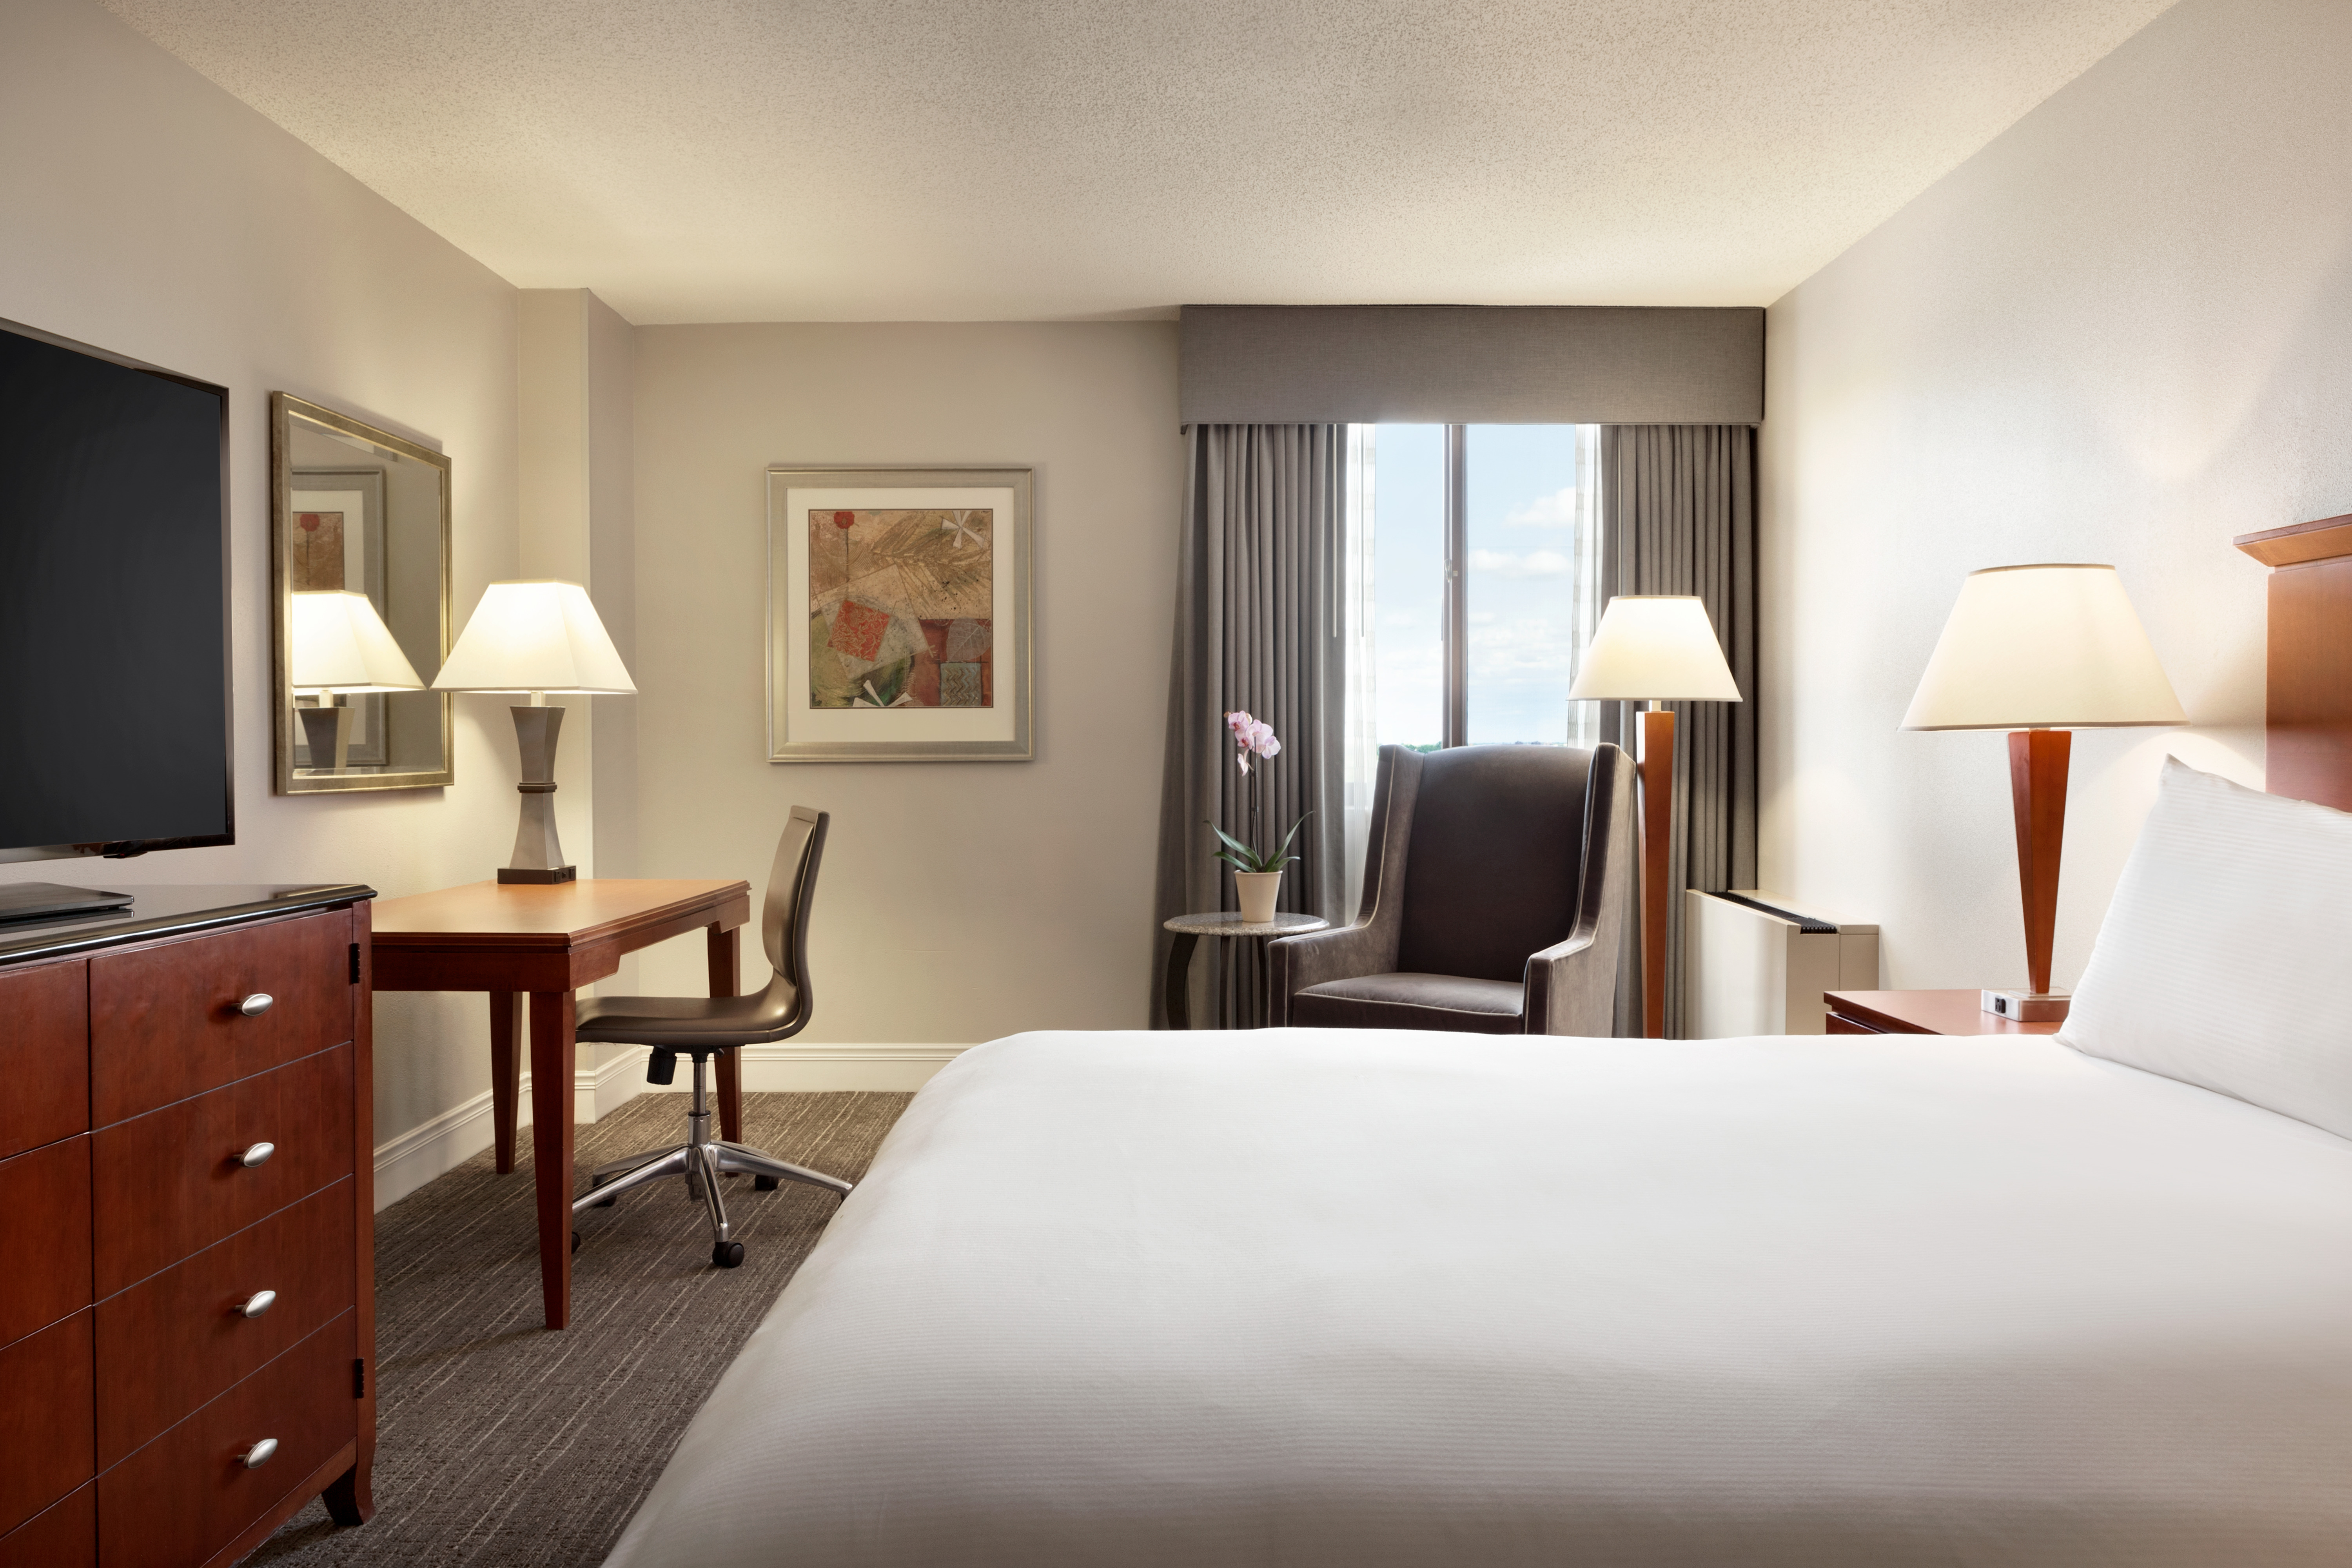 Bedroom at DoubleTree